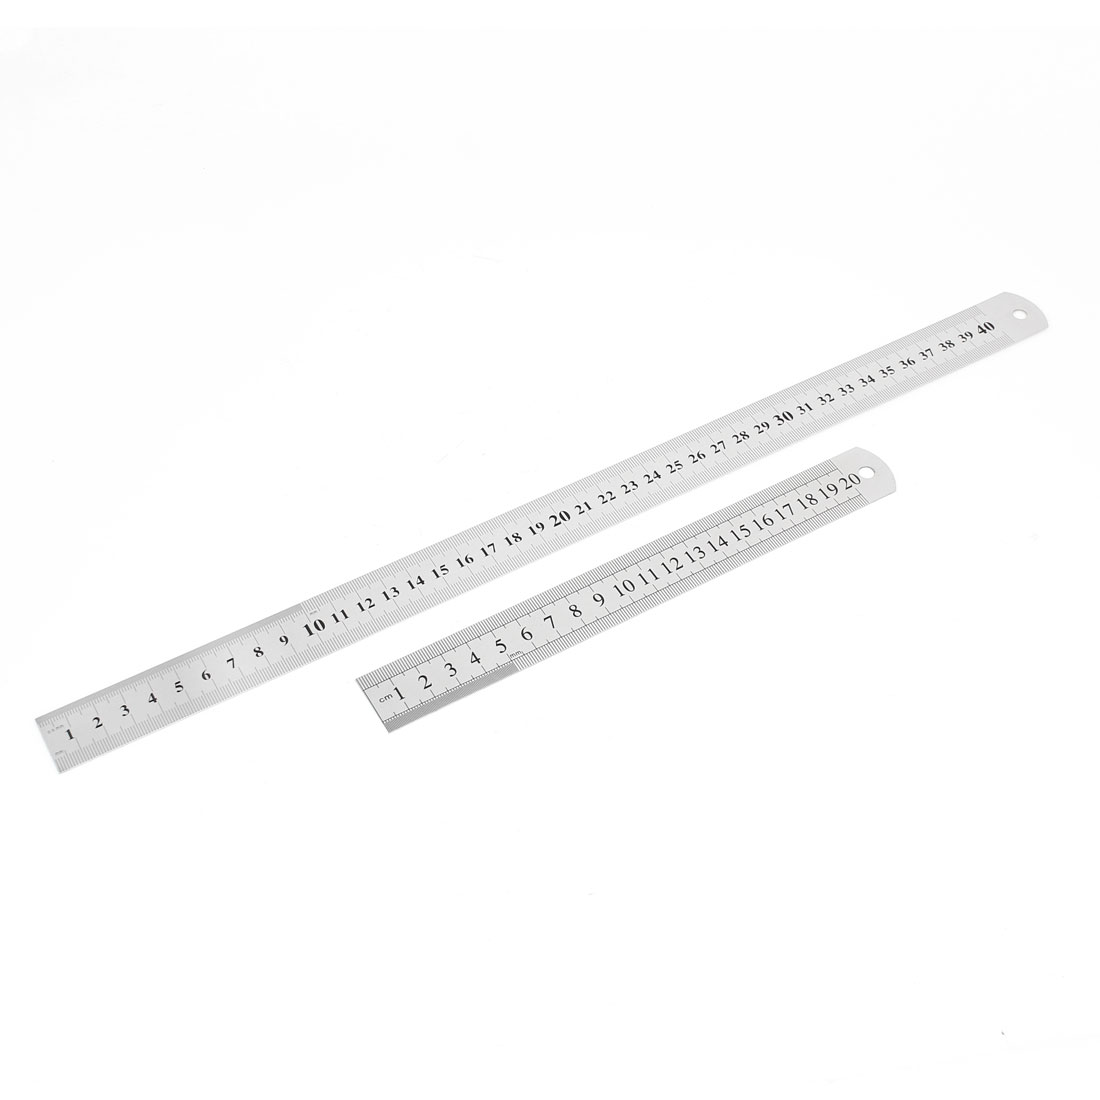 2 in 1 20cm 40cm Double Sides Students Metric Straight Ruler Silver Tone